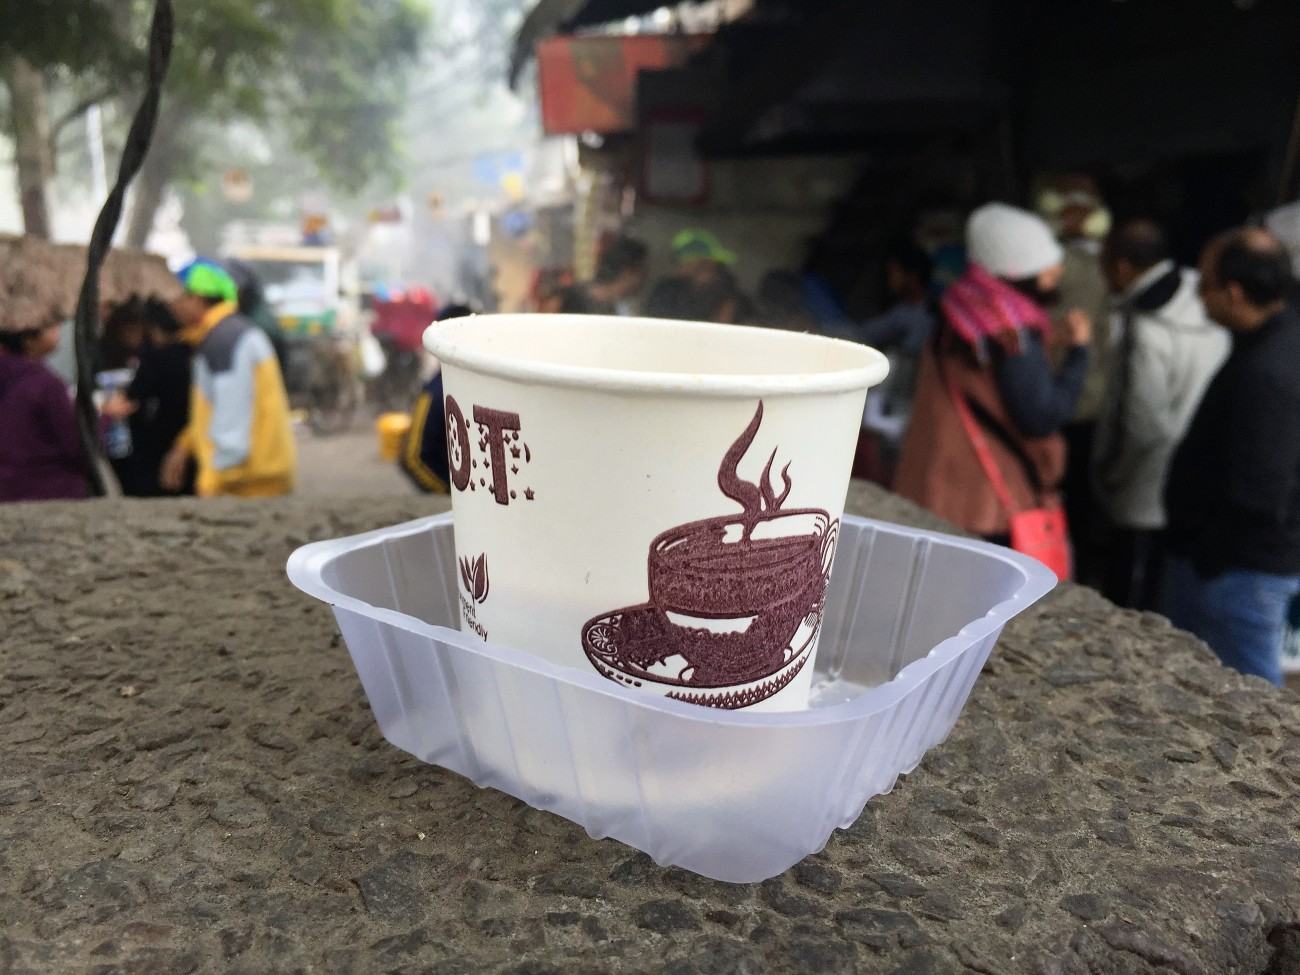 Hot Tea - Ring Road Market